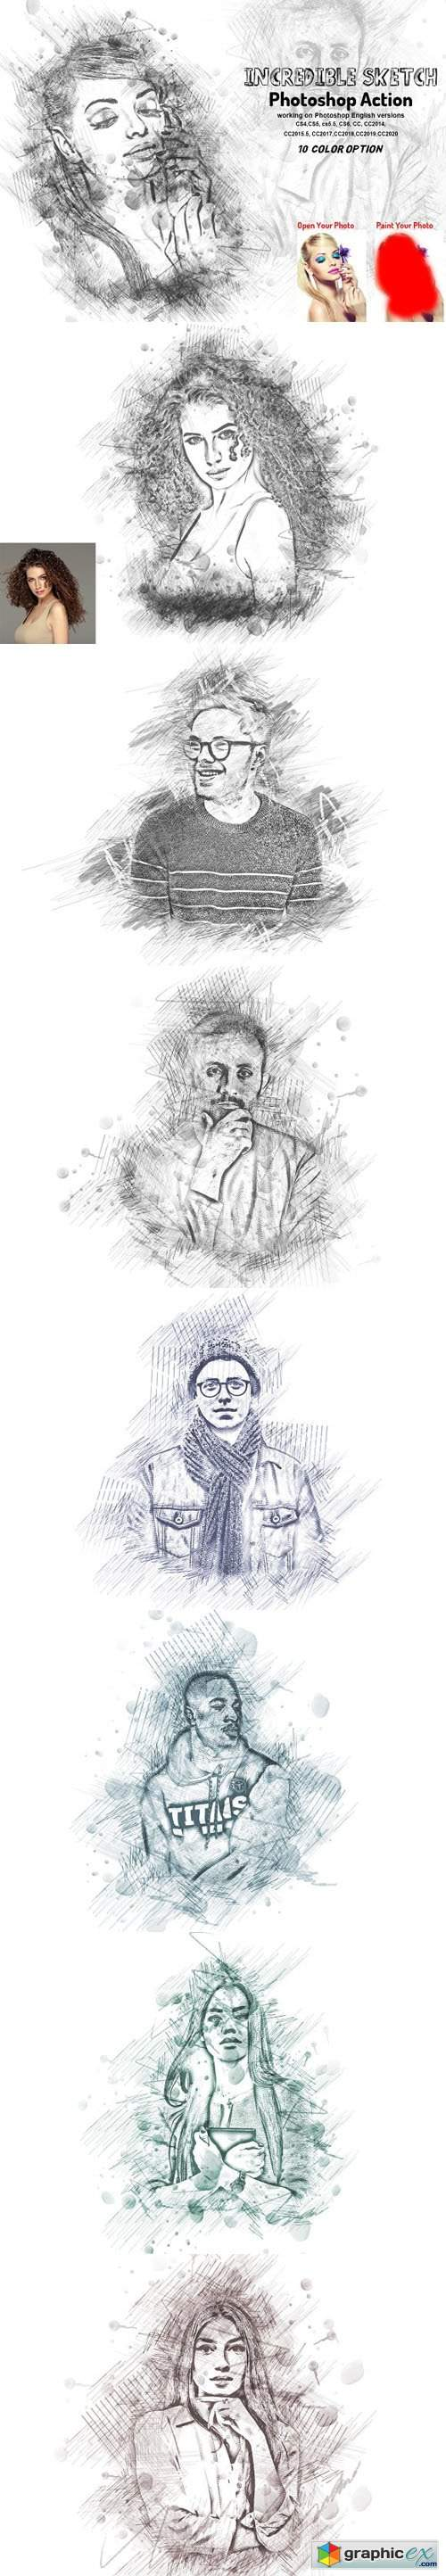 Incredible Sketch Art Action for Photoshop + Brushes